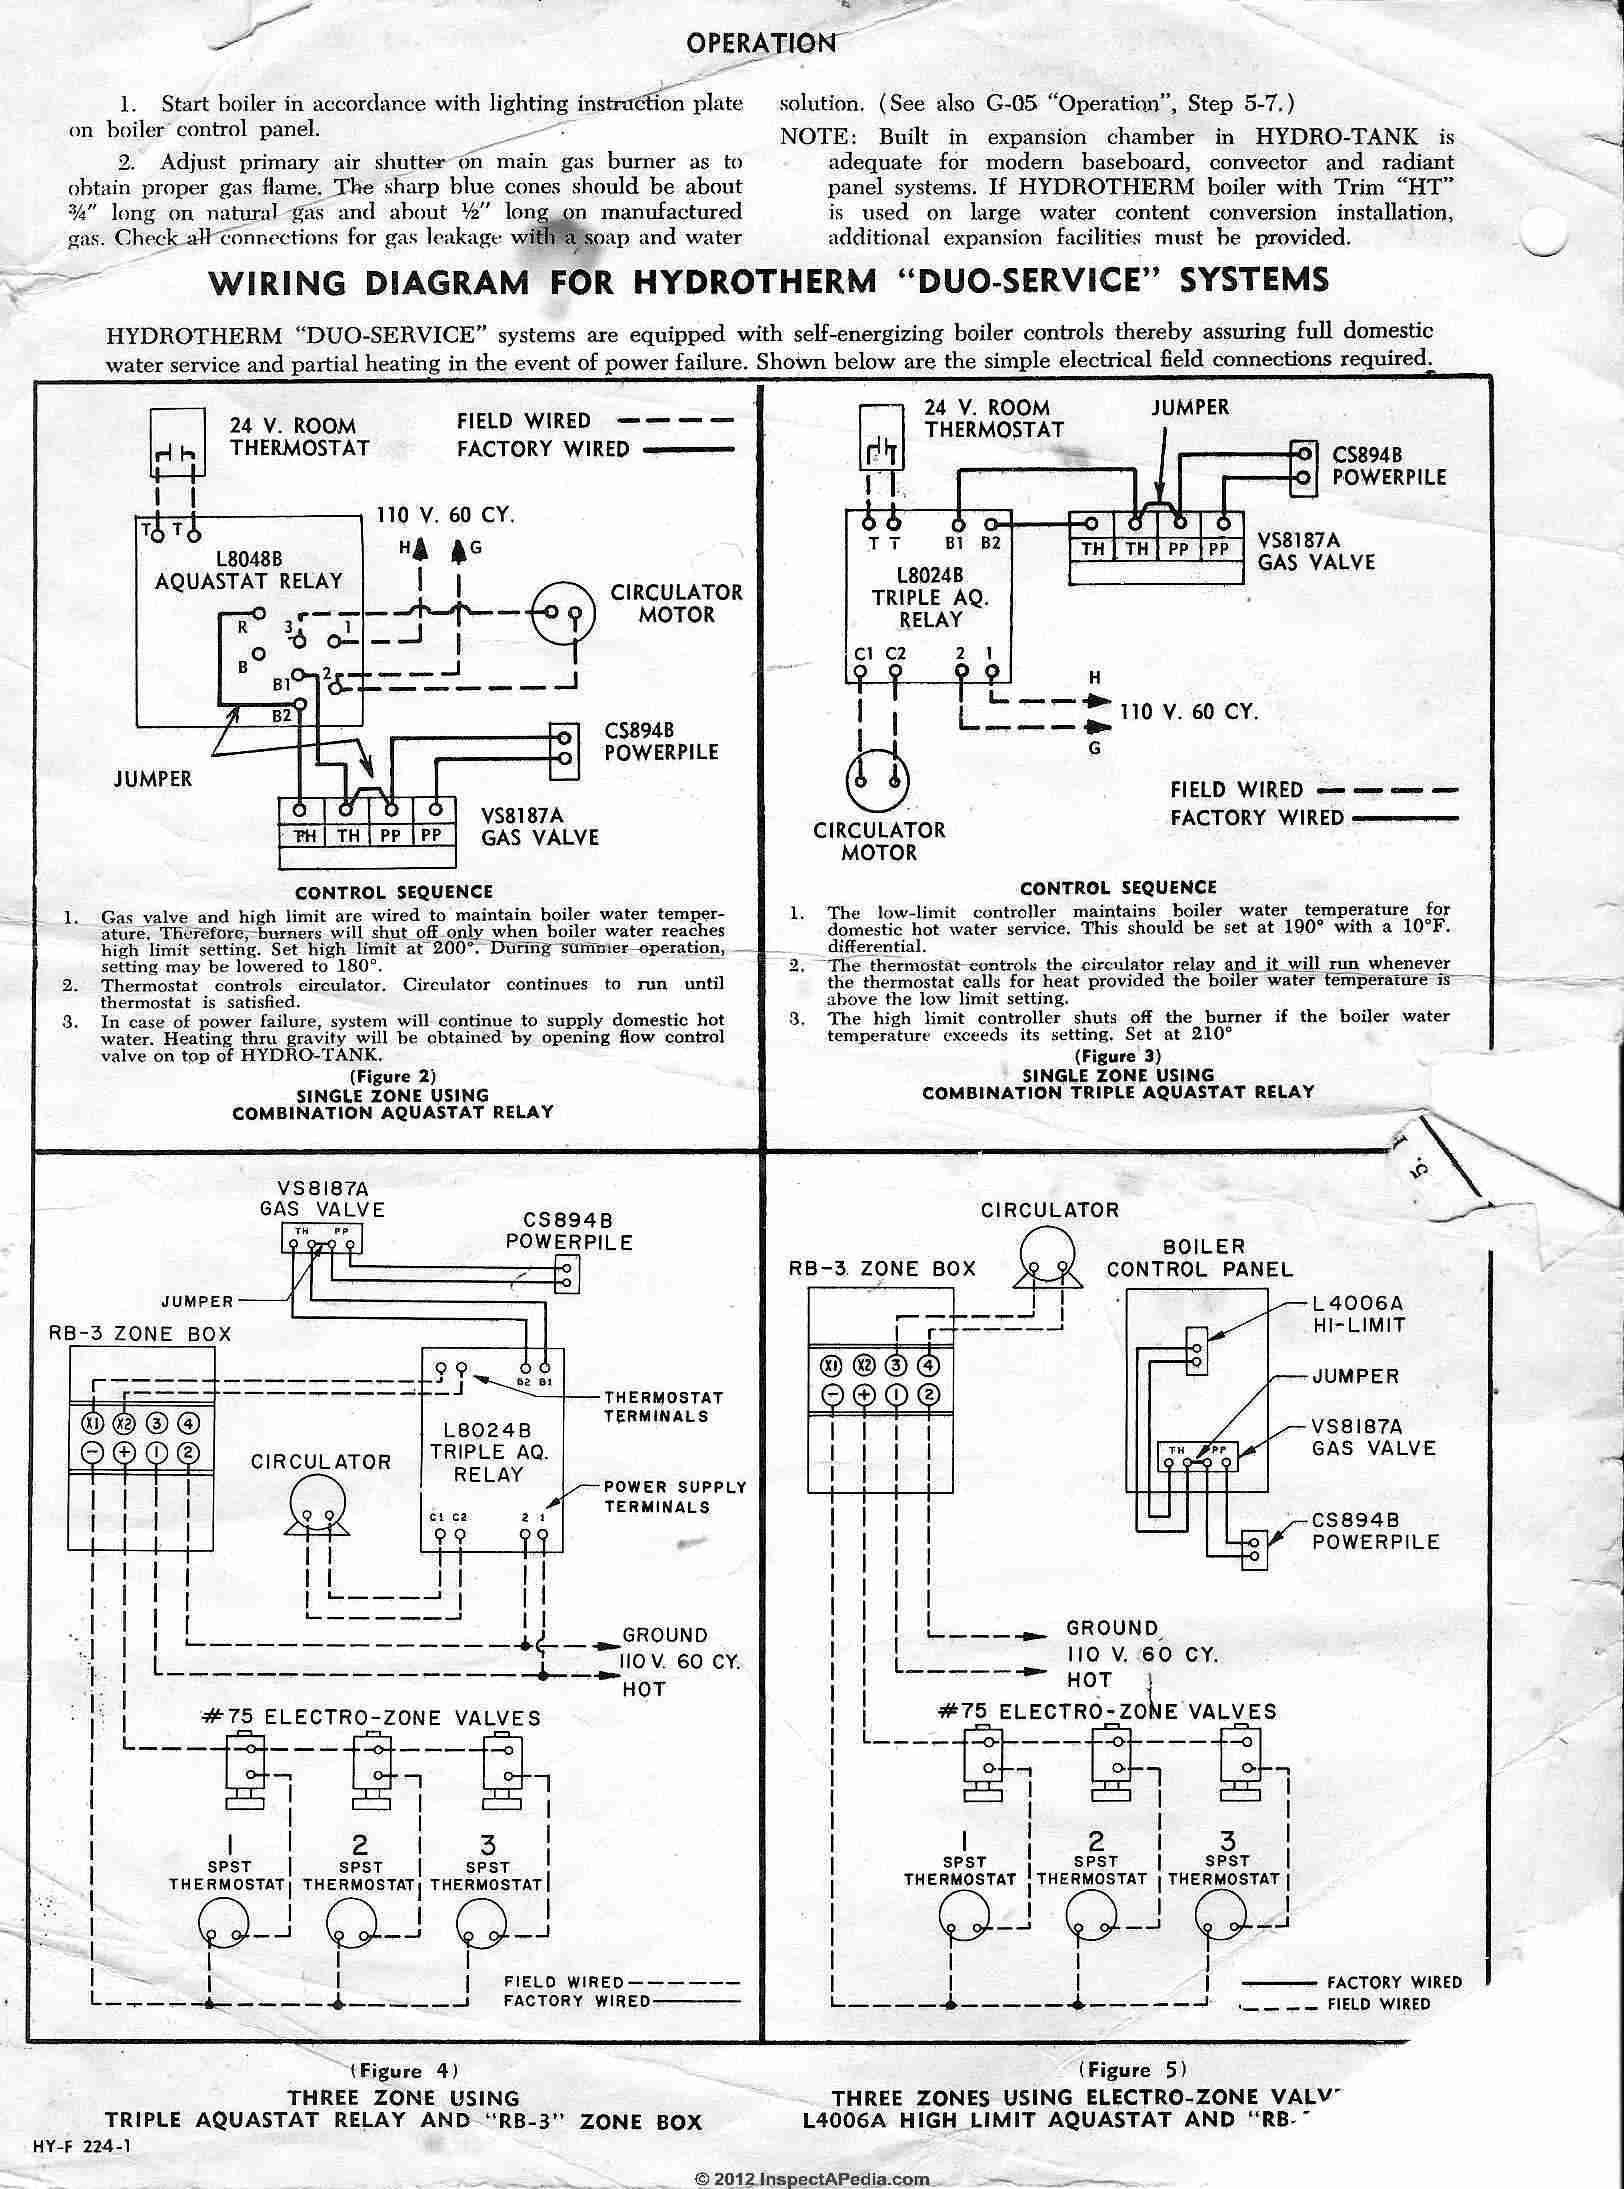 ra117a1047 honeywell wiring diagram wiring diagram bloghoneywell oil burner primary control wiring diagram wiring diagrams honeywell oil burner primary control wiring diagram